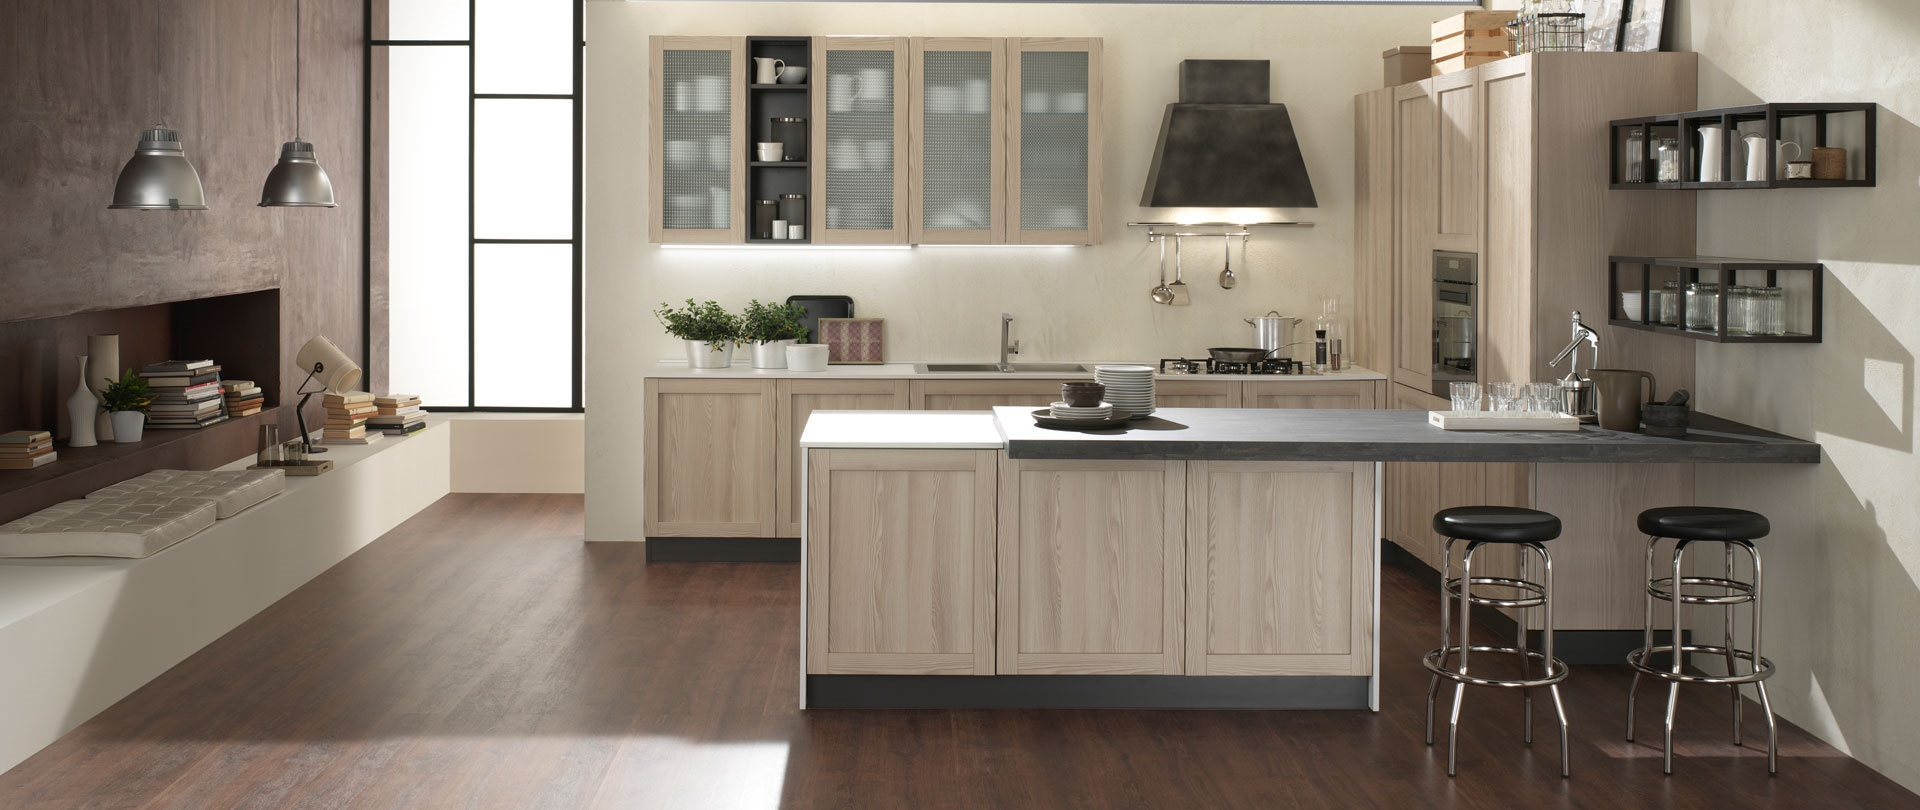 cucina moderna con isola shabby chic noir in offerta completa ...